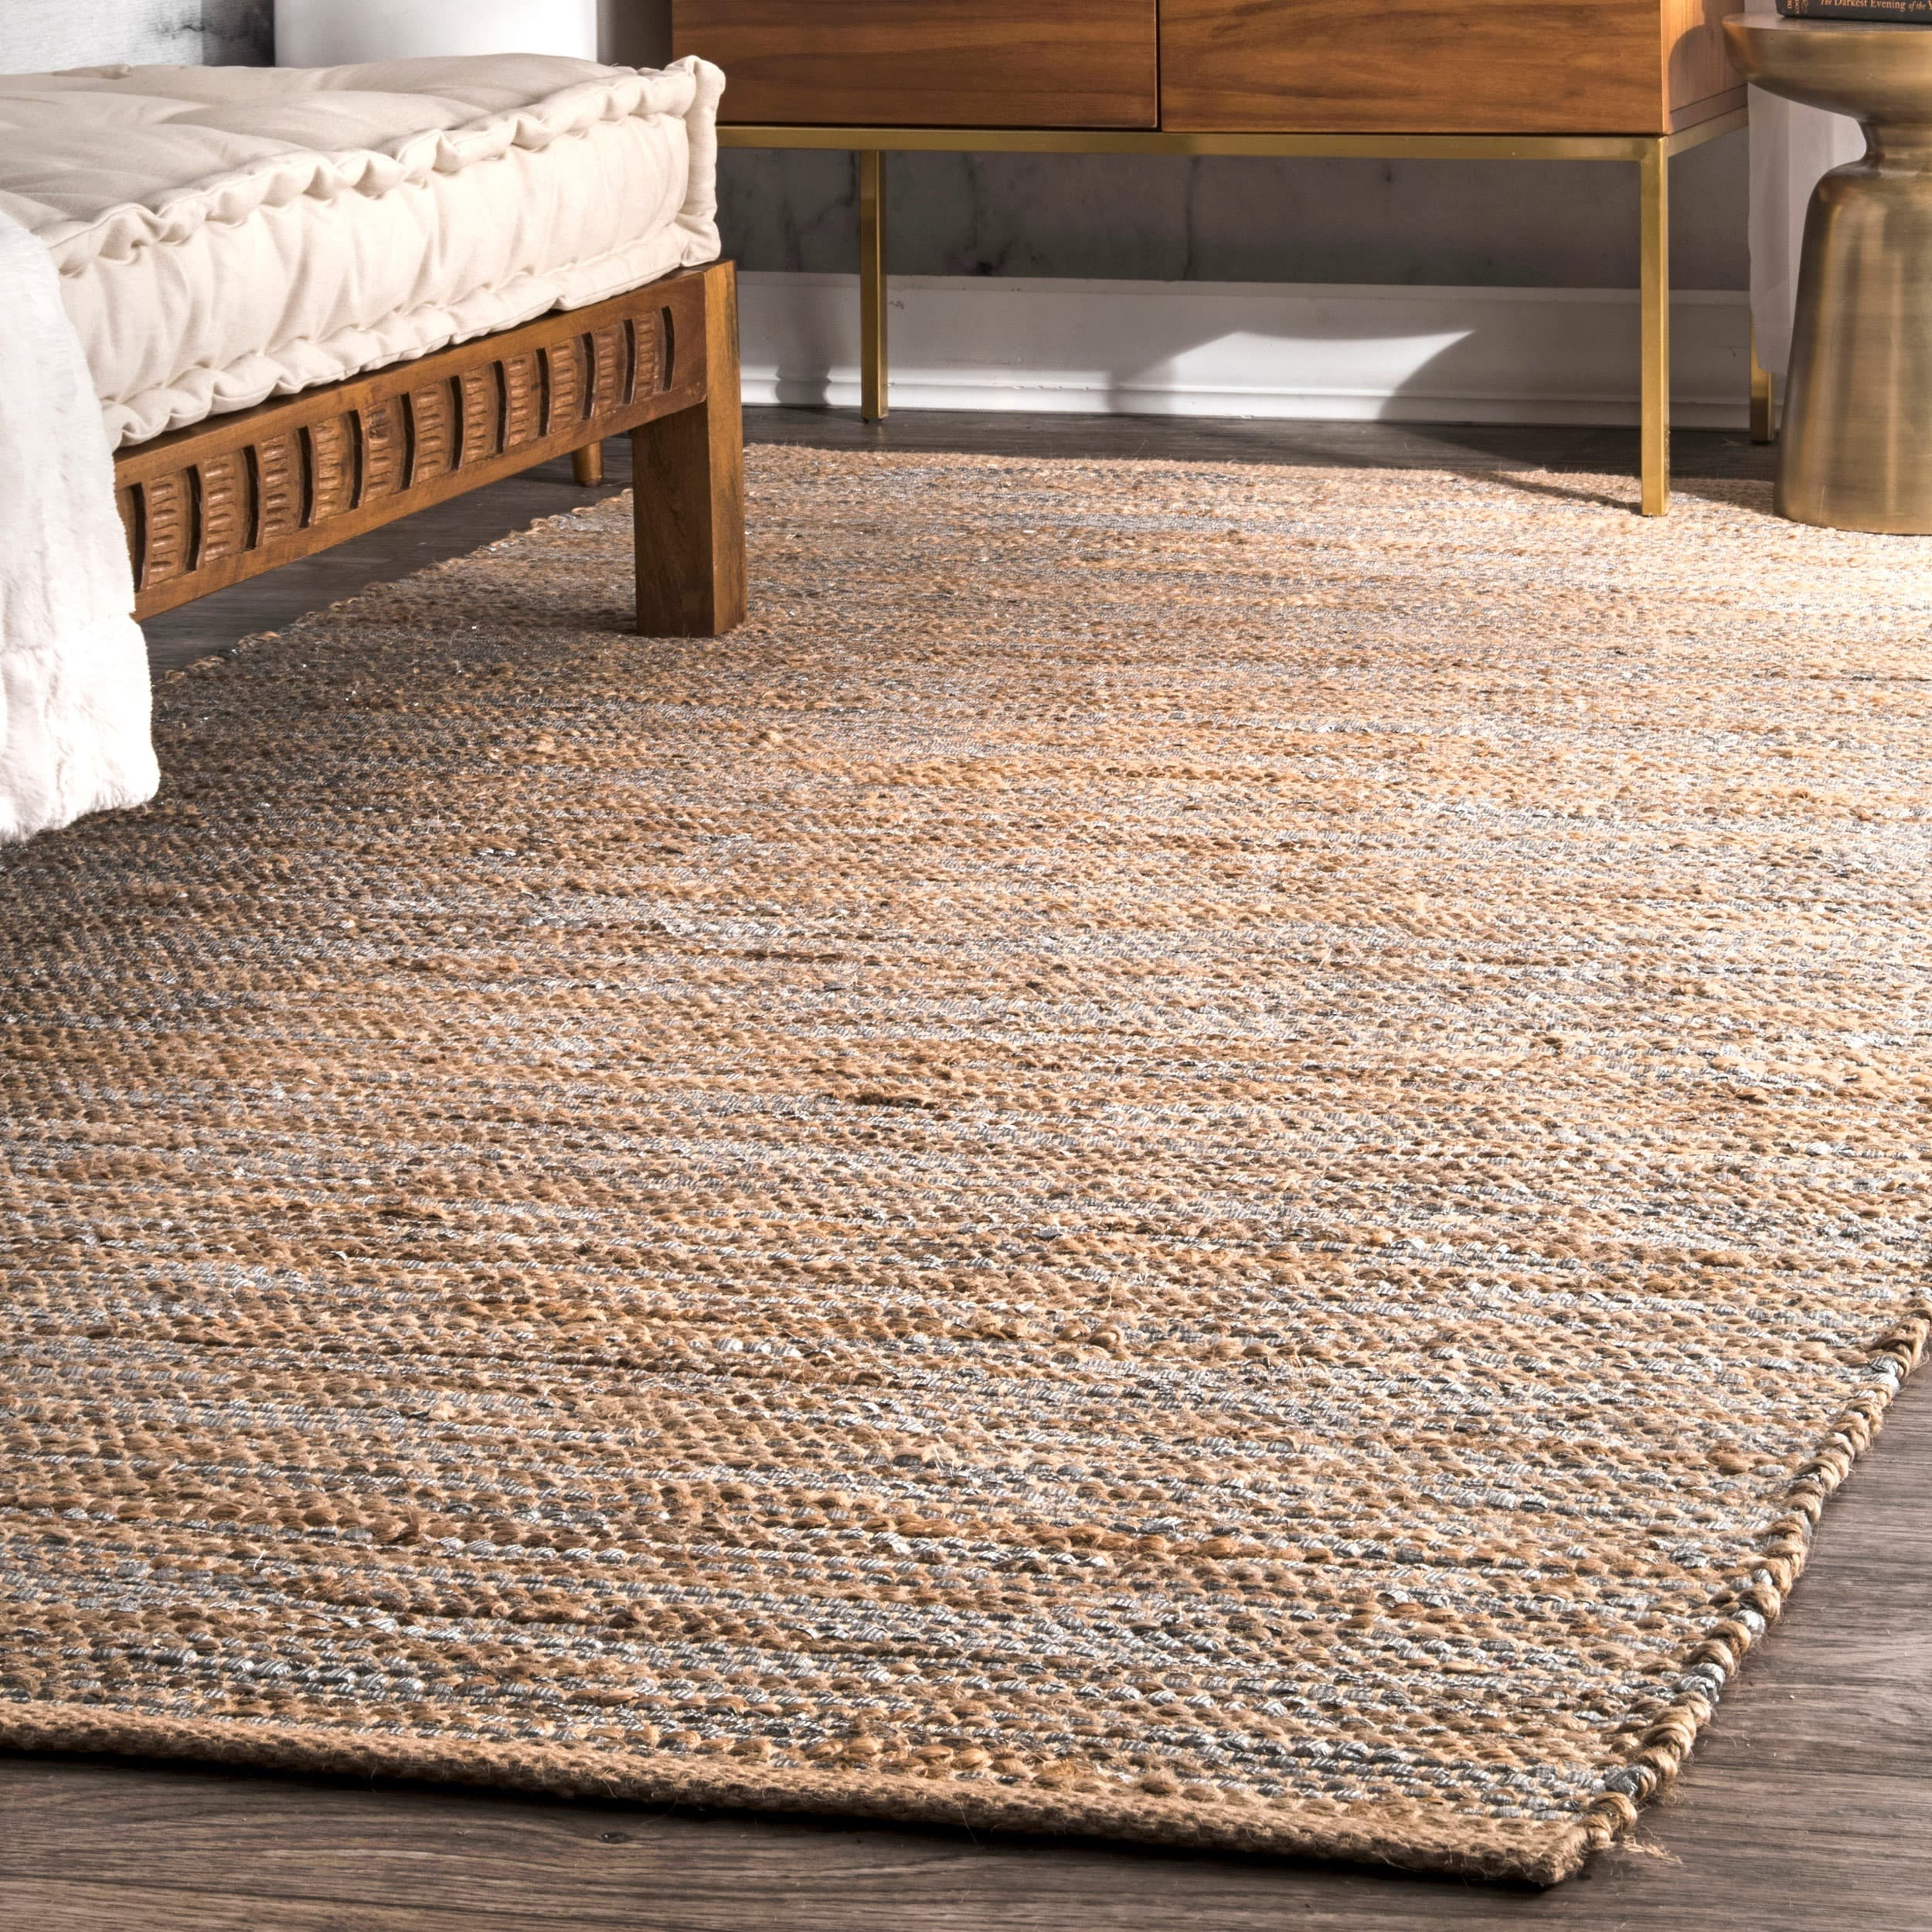 shades varying neutral homewares d hand to rug natural from rugs placed made in sizes nutmeg dining woven is republic bay it comes cor braided the fit and jute any this perfect coco underfoot